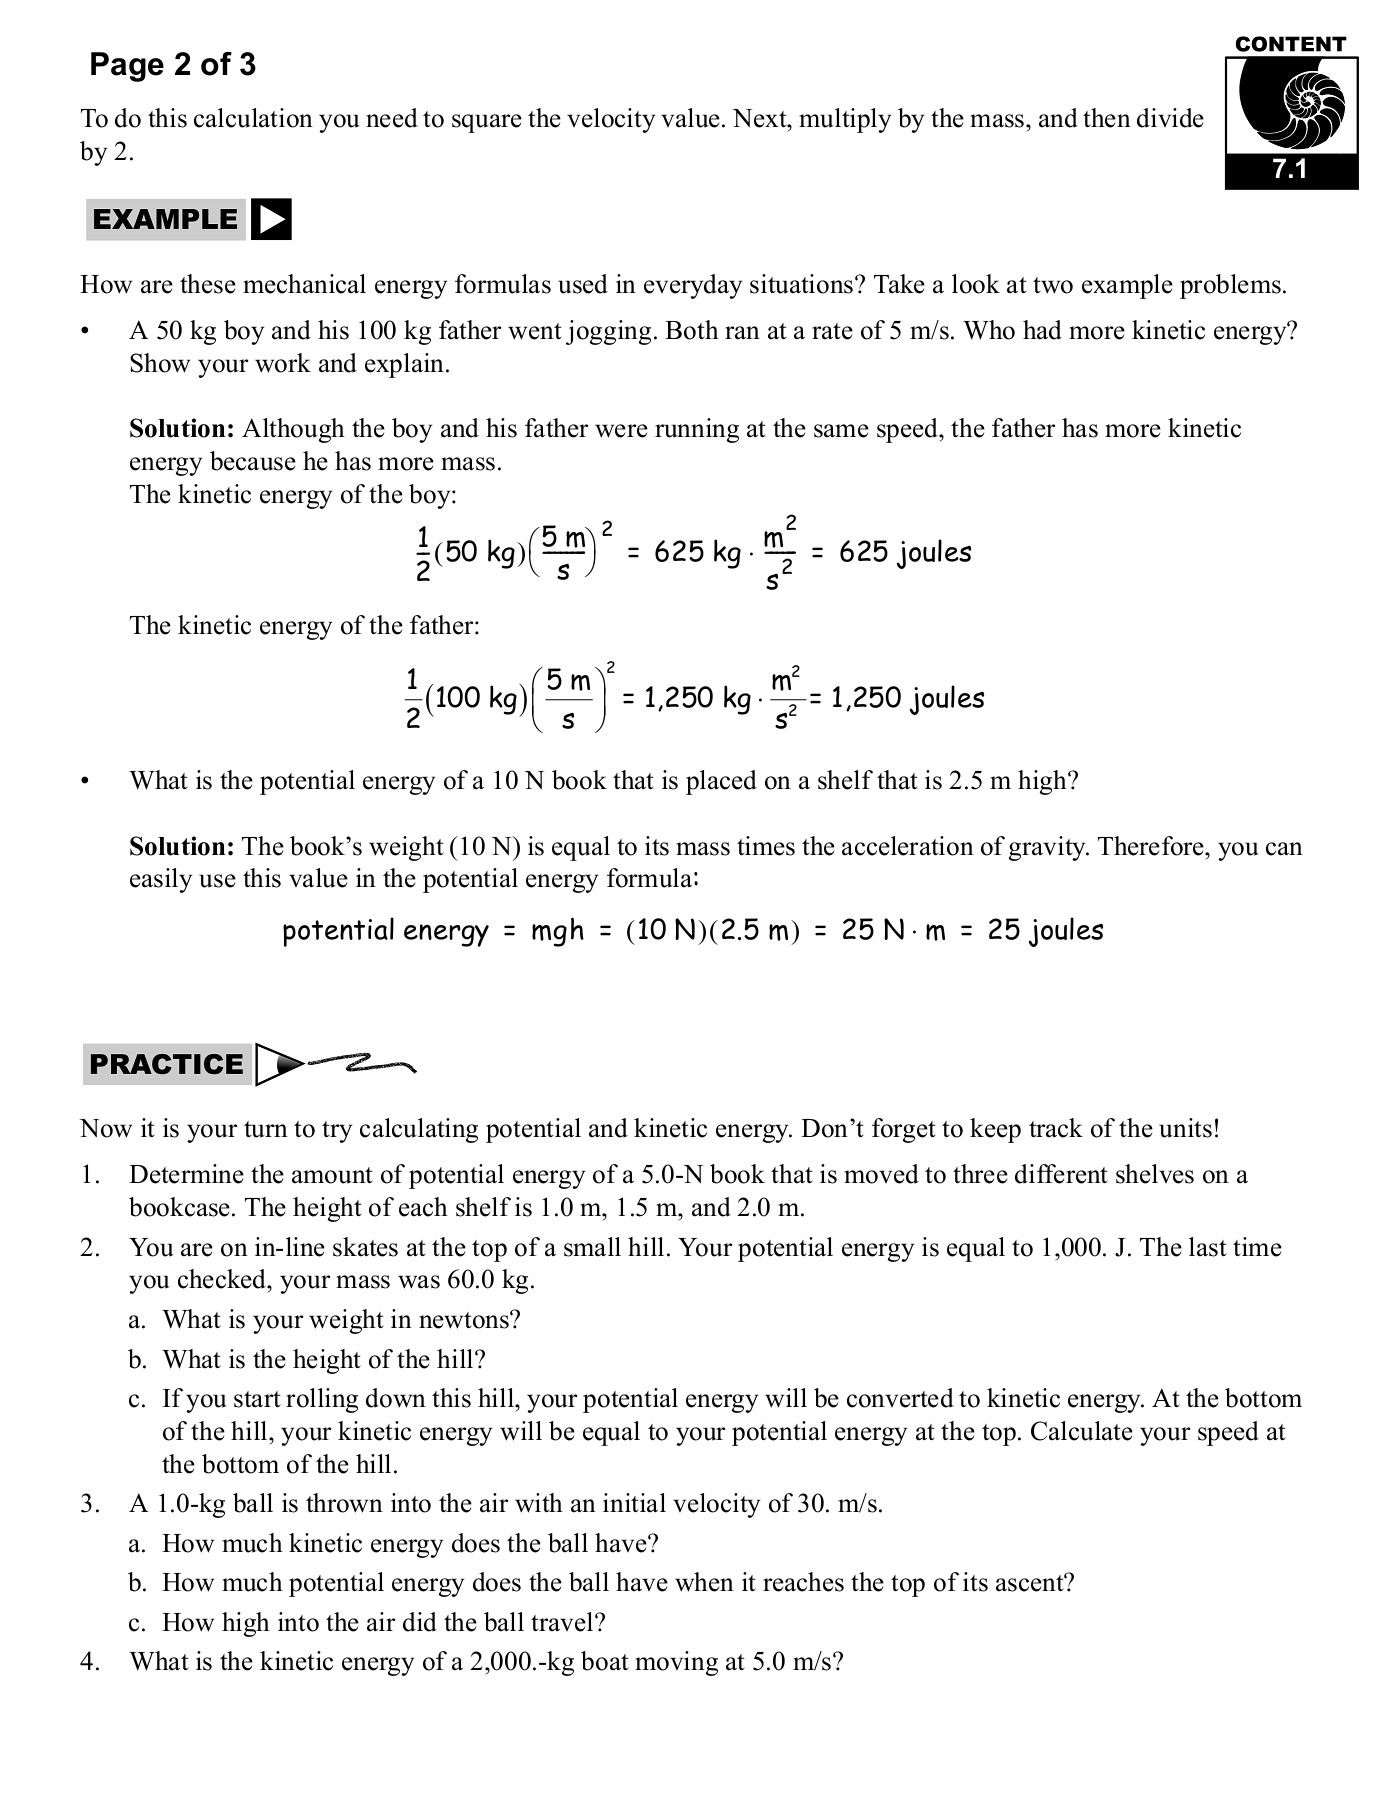 Kinetic And Potential Energy Worksheet Answers Key